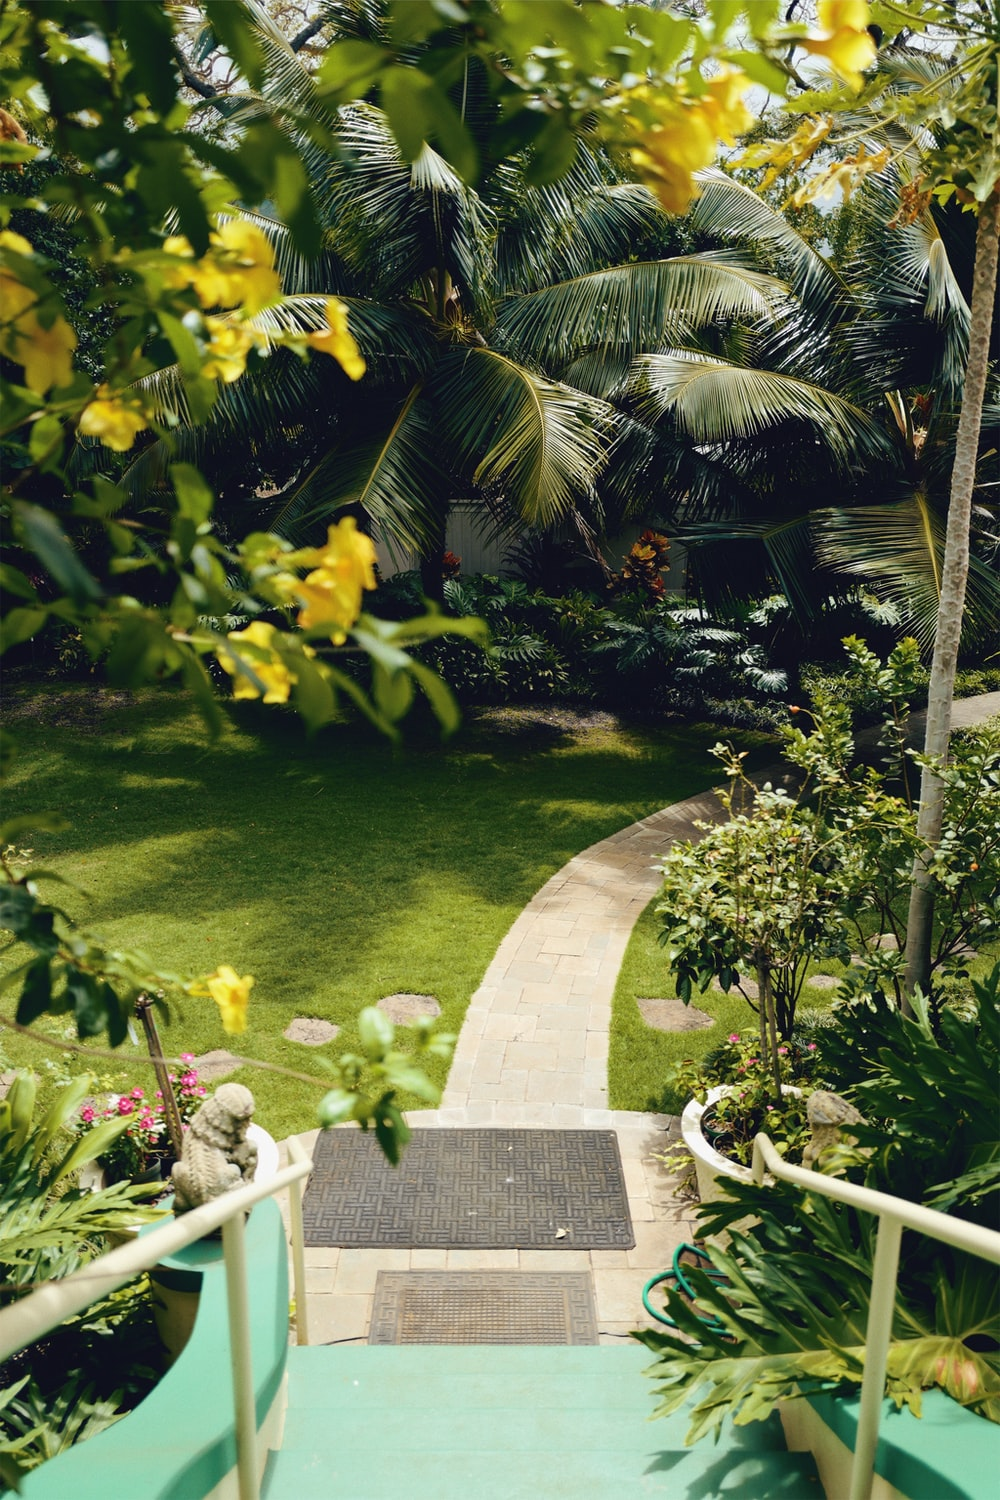 empty walkway surrounded with plants during daytime